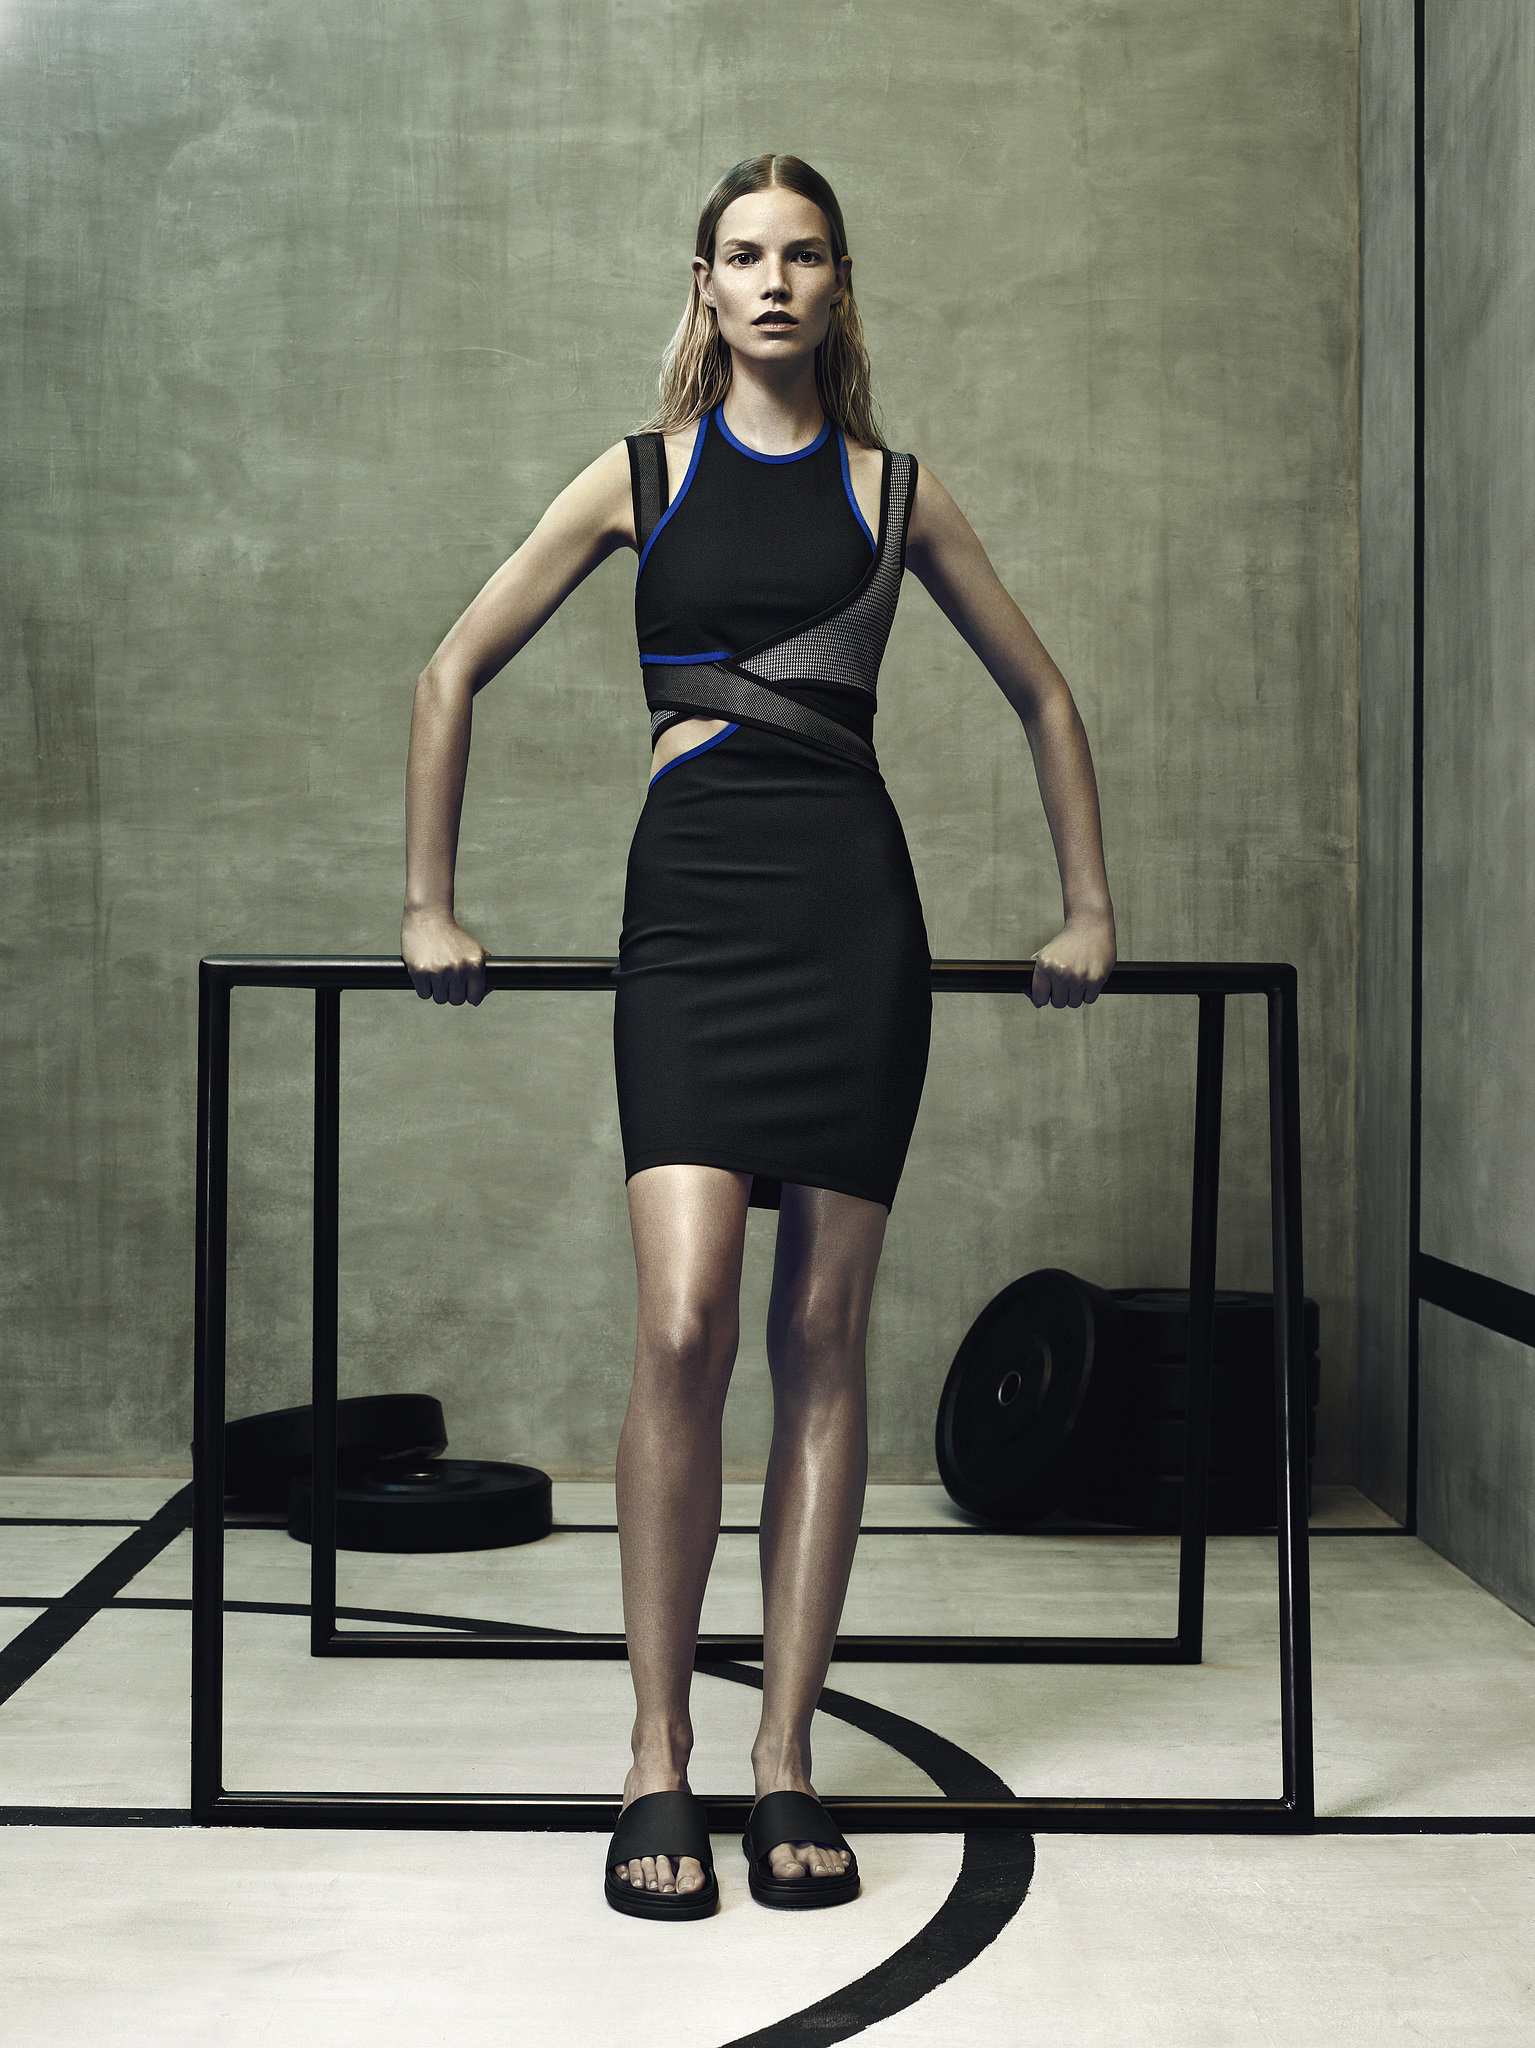 It's been a long, slow reveal, but finally the entire Alexander Wang x H&M look book is here.. There's been a lot of buzz about this collection. Alexander Wang, now firmly entrenched at Balenciaga.